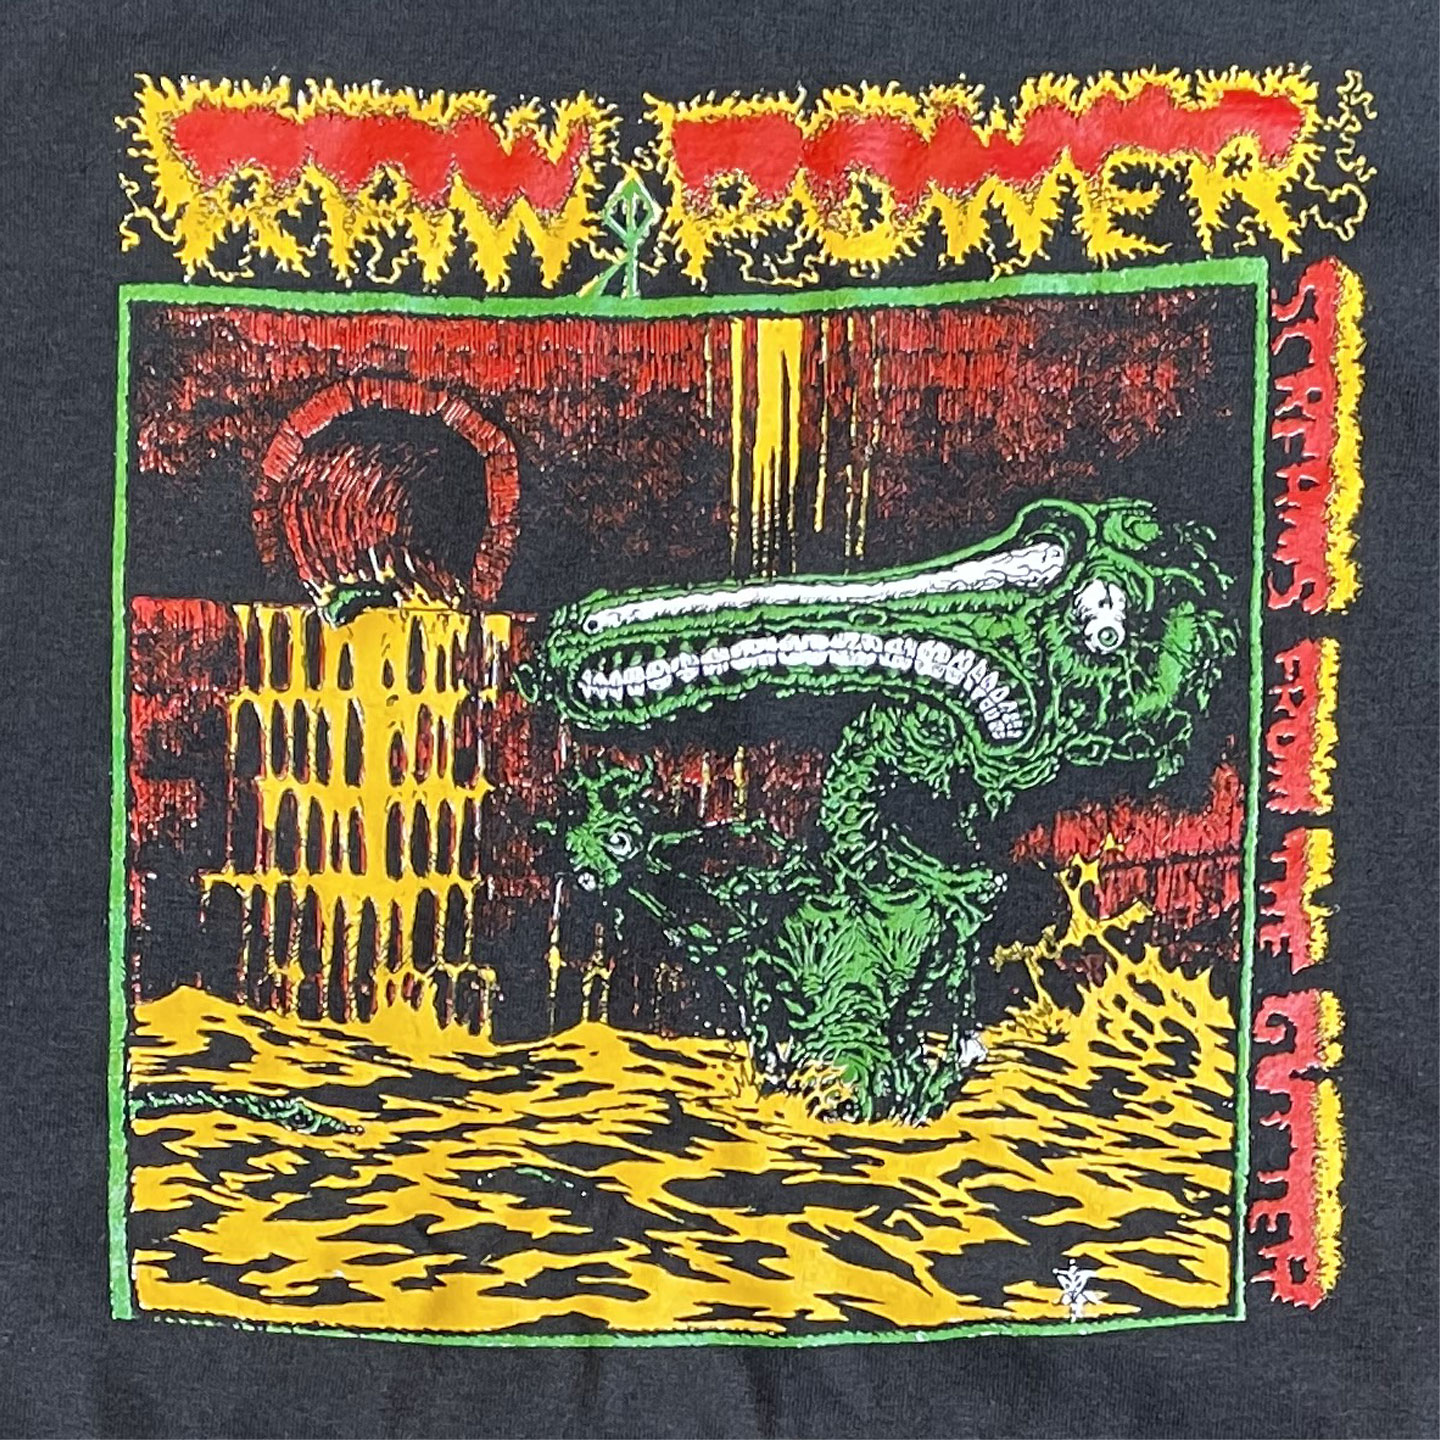 RAW POWER Tシャツ Screams From the Gutter